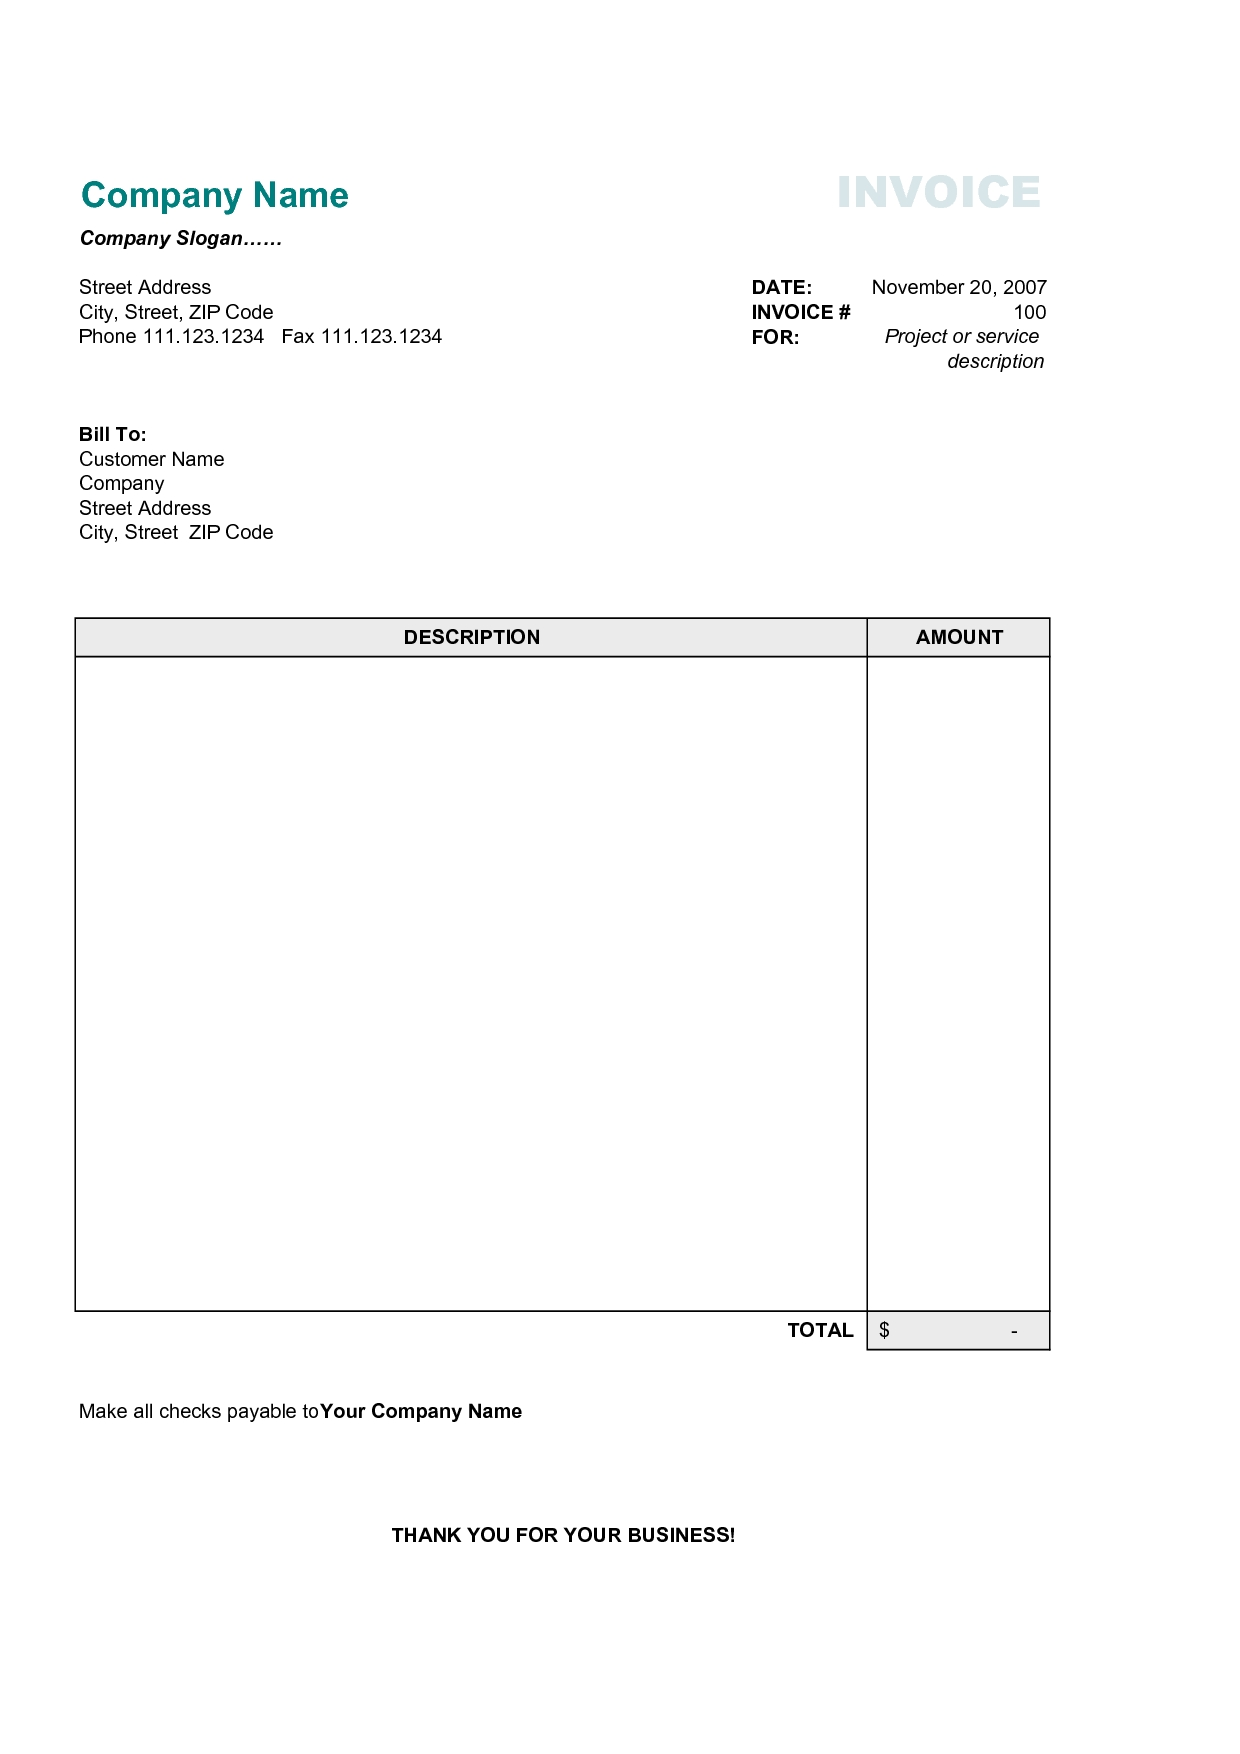 free online invoice free blank invoices online resume writing service from a 1240 X 1754